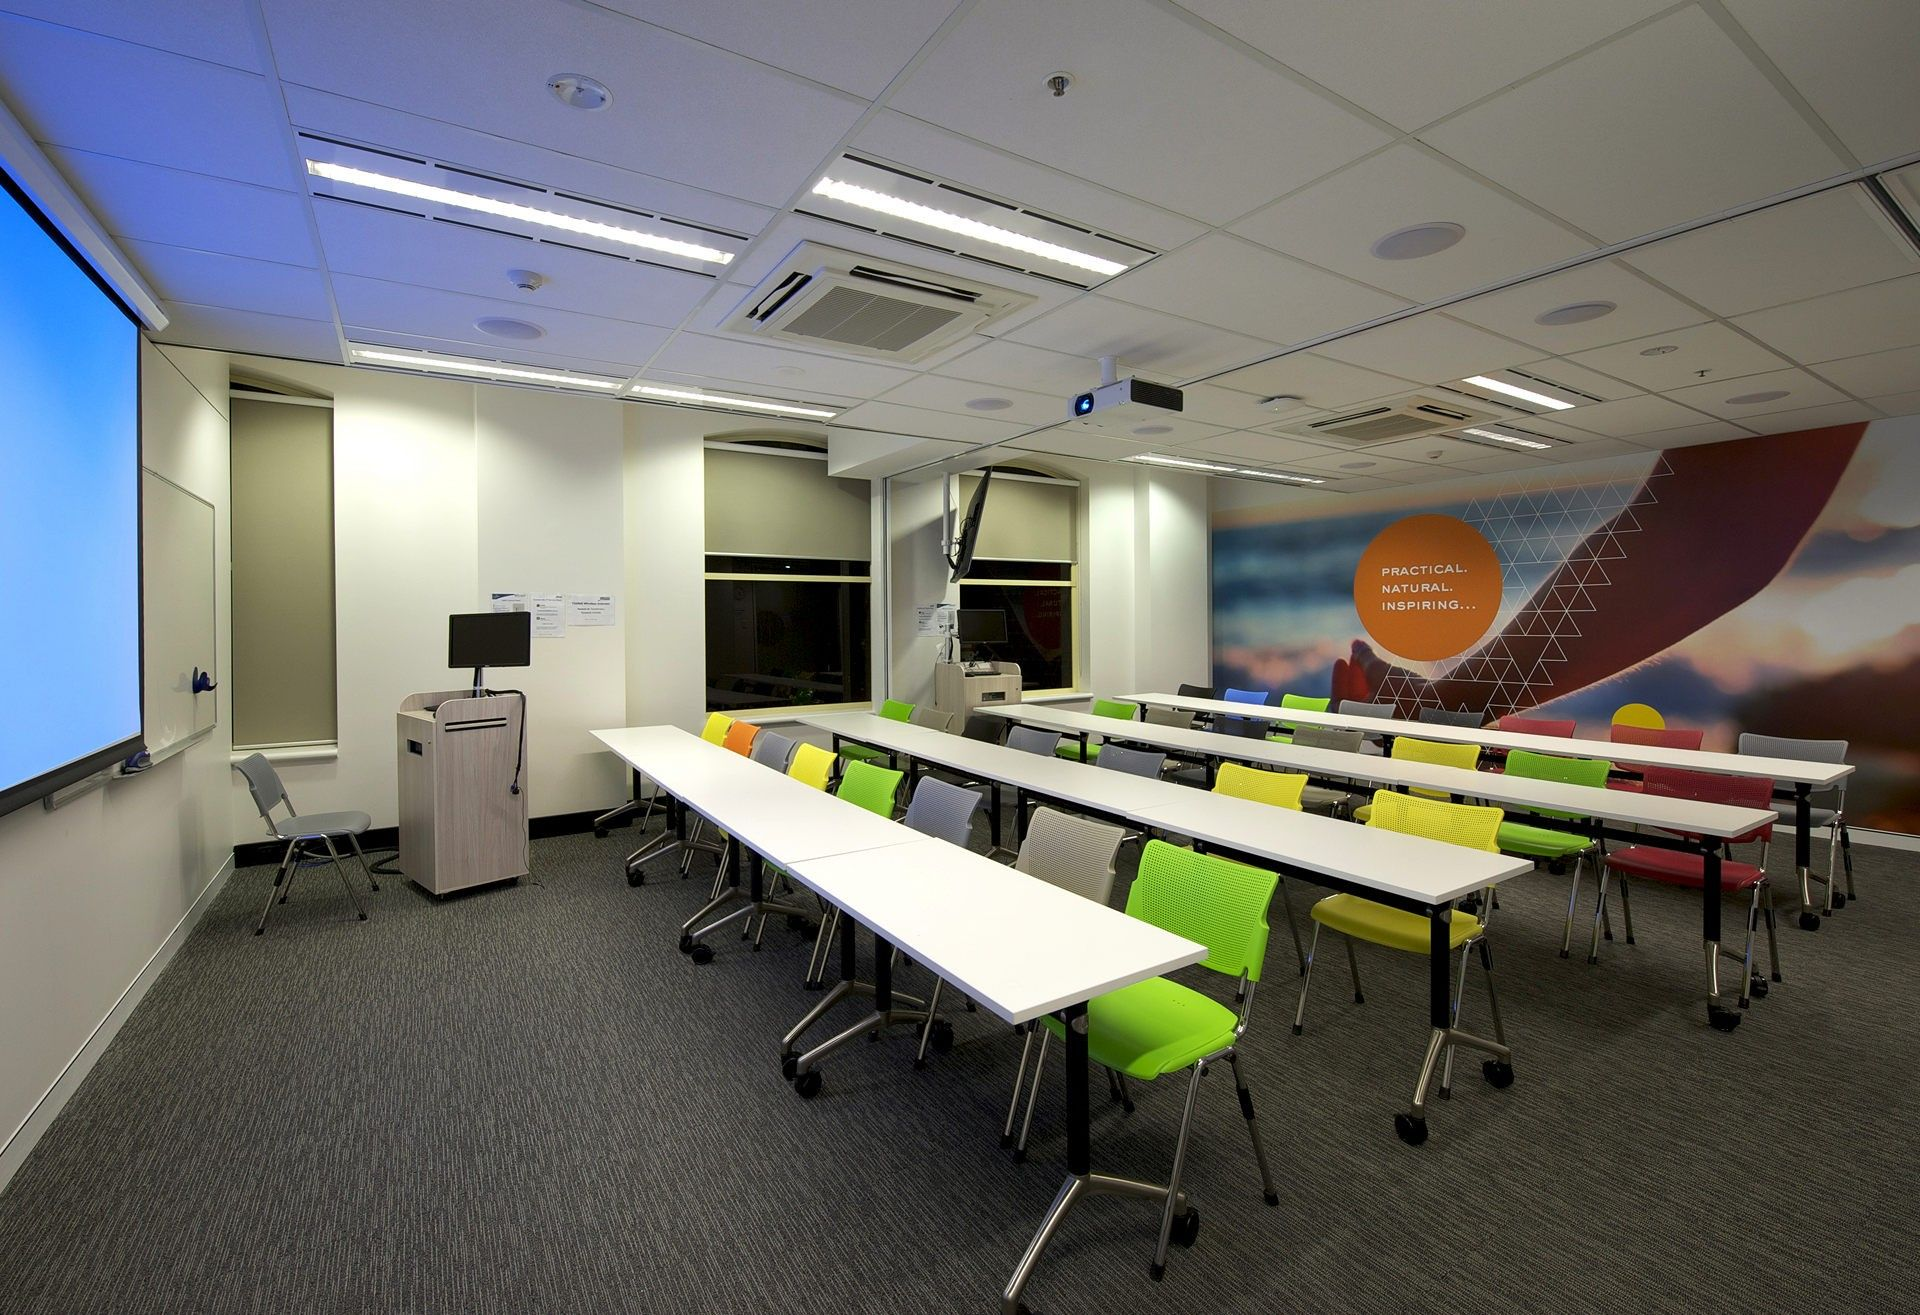 Training Room Fitout Training Room 2 Melbourne School College Fitout Training Room Layout Design Room Design Interior Design Colleges,Dubai Design District Logo Png